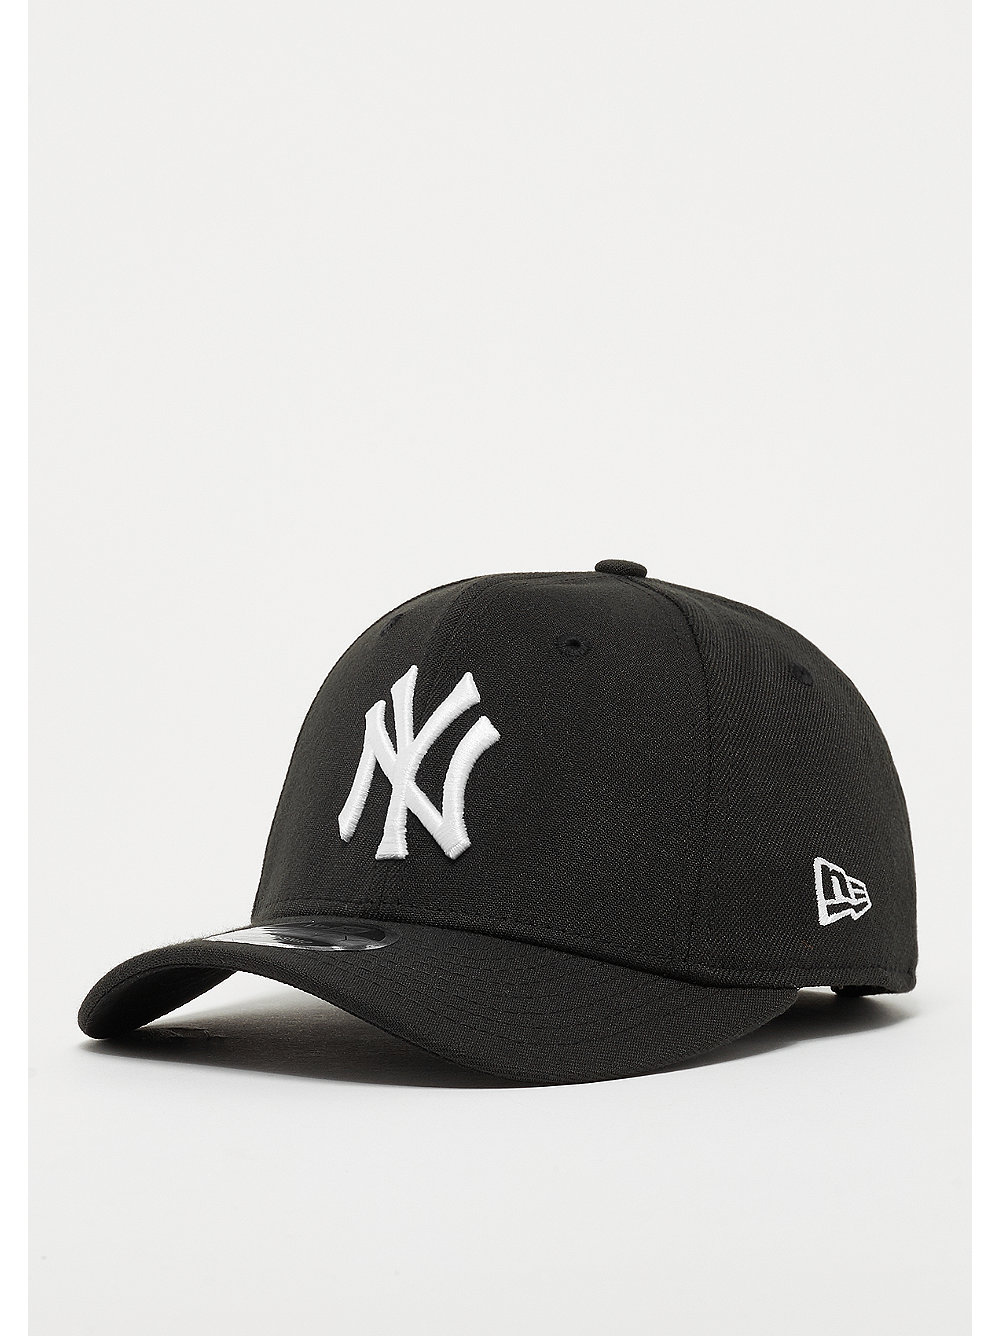 Compra New Era 9Fifty MLB New York Yankees Stretch Fit Snap black otc Gorras  de Baseball en SNIPES 5bbd78fb3f0